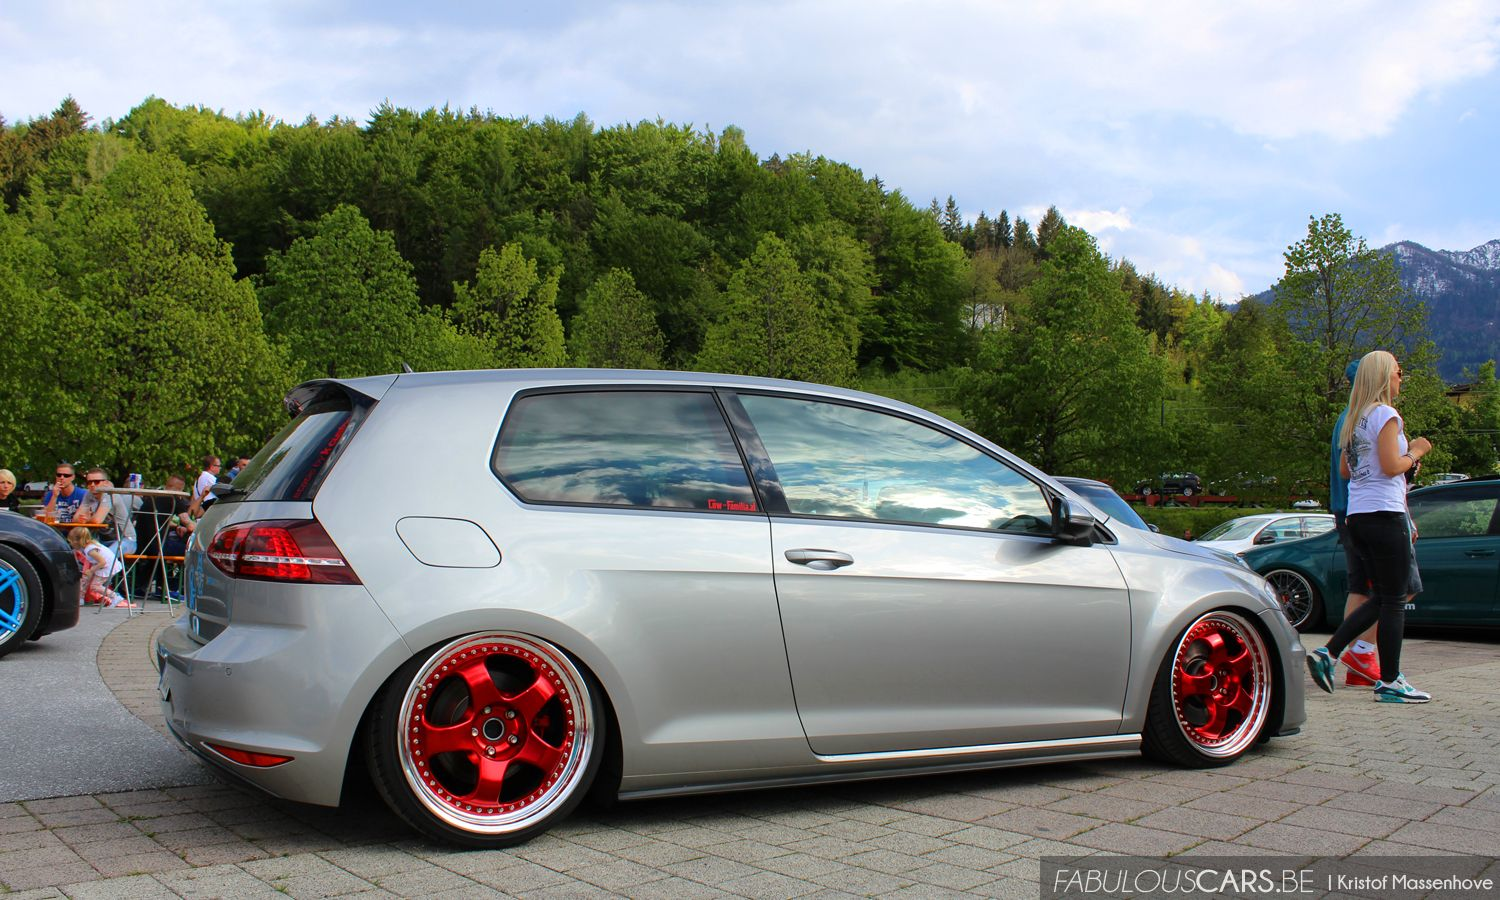 Vw golf r mk6 cars one love - Cars W Rthersee Tour 2016 How Deep M G One Love By Fabulouscars Be